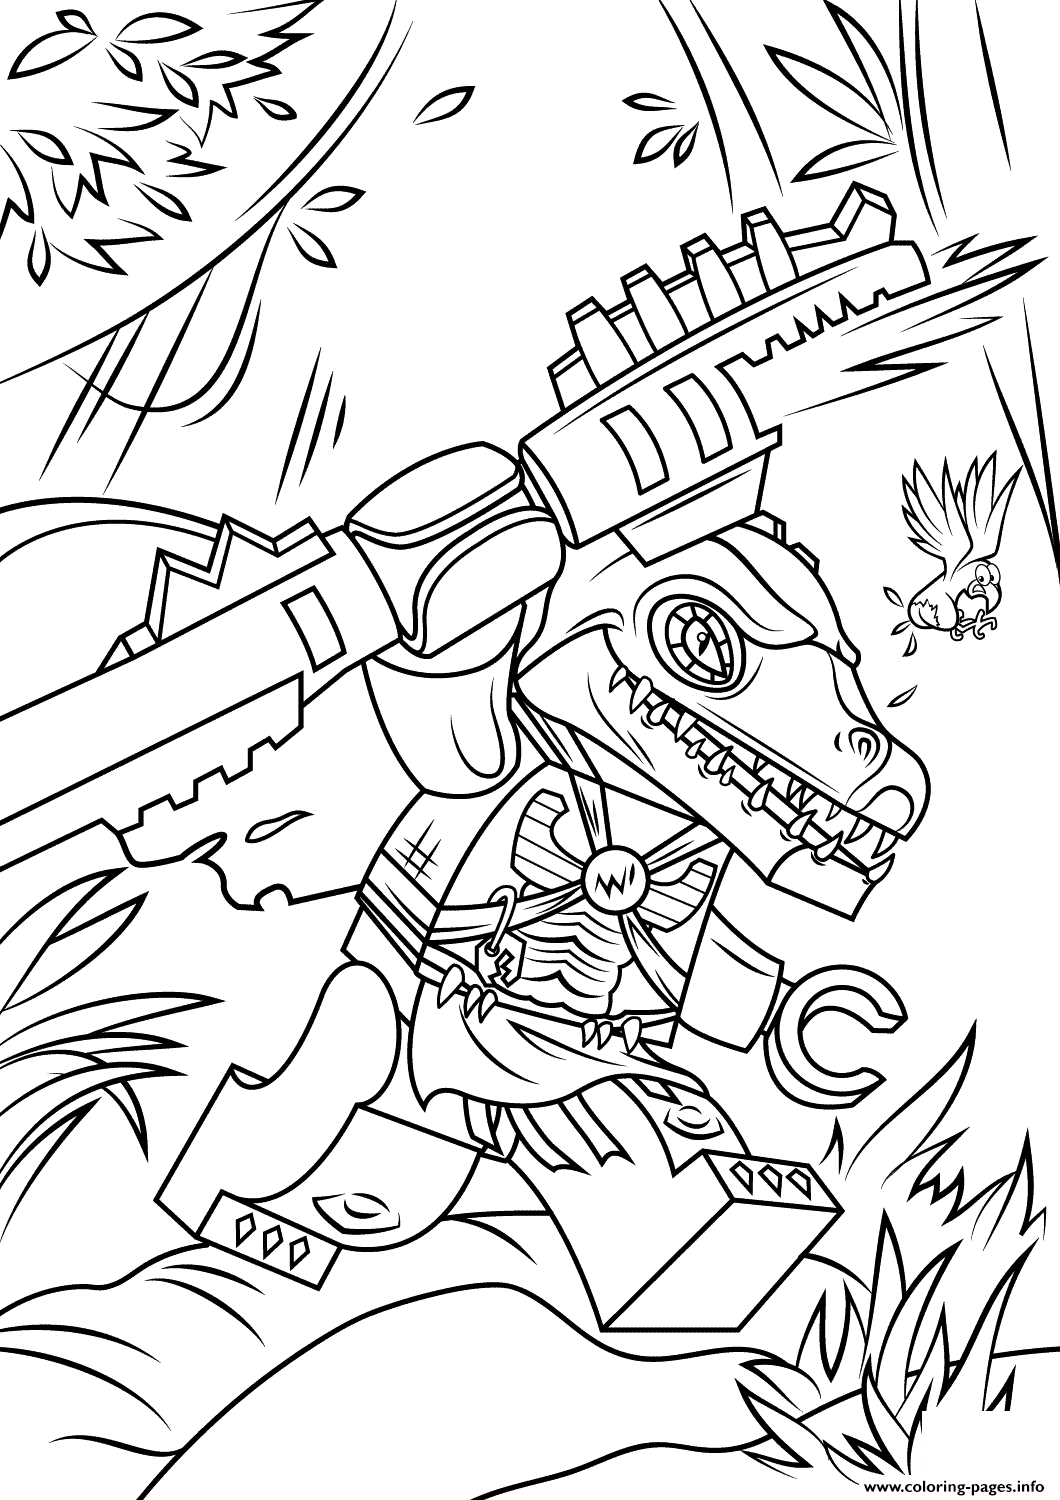 coloring pages lego chima lego chima coloring pages coloring pages to download and coloring lego chima pages